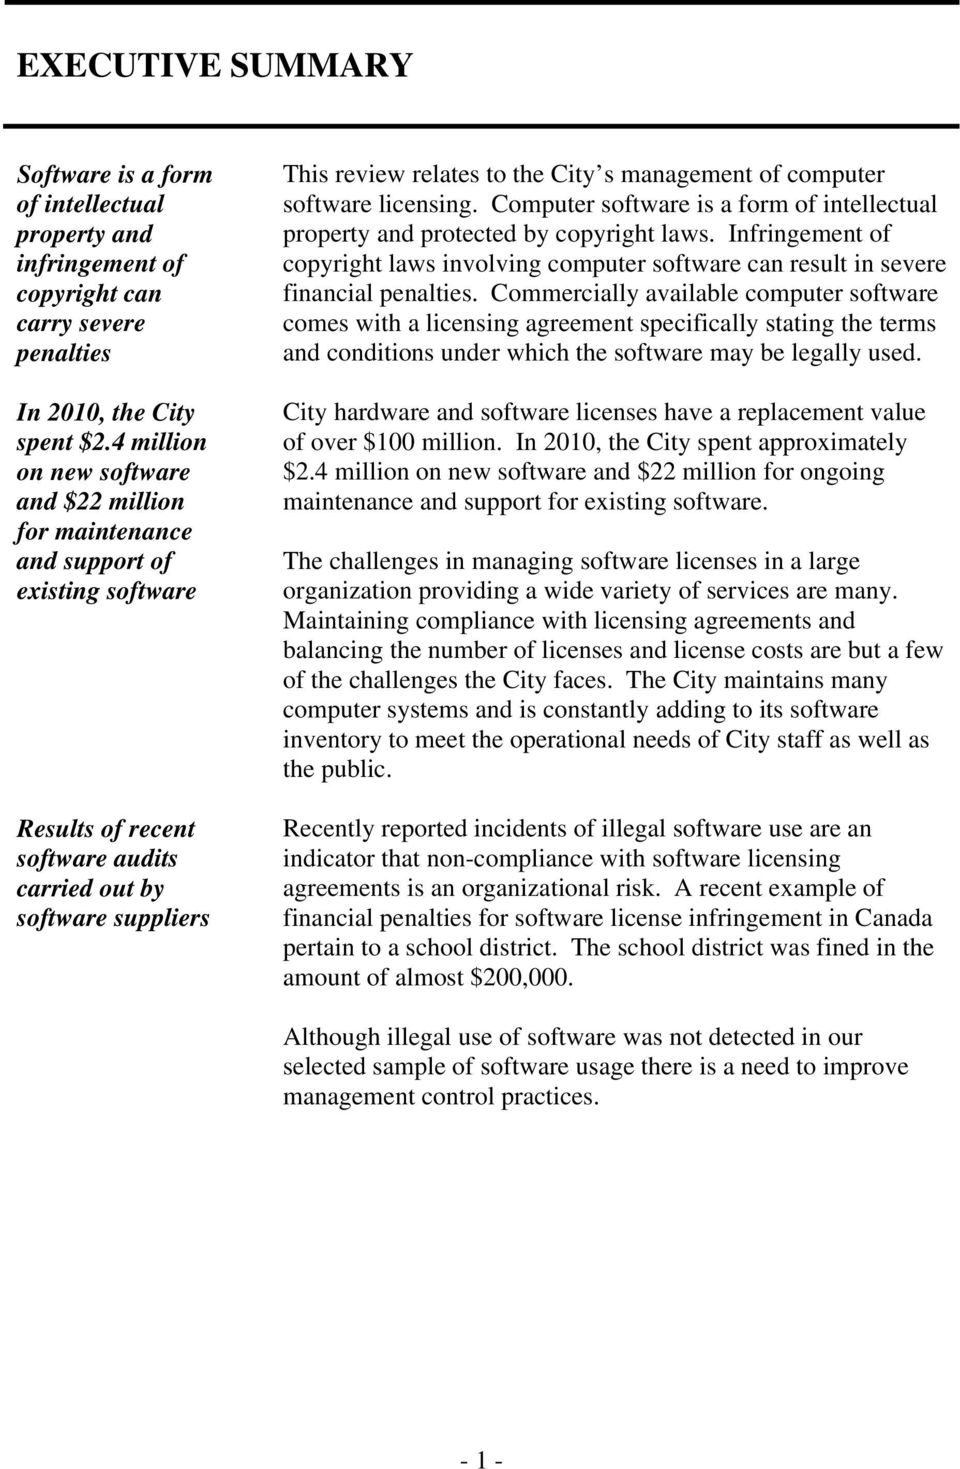 management of computer software licensing. Computer software is a form of intellectual property and protected by copyright laws.